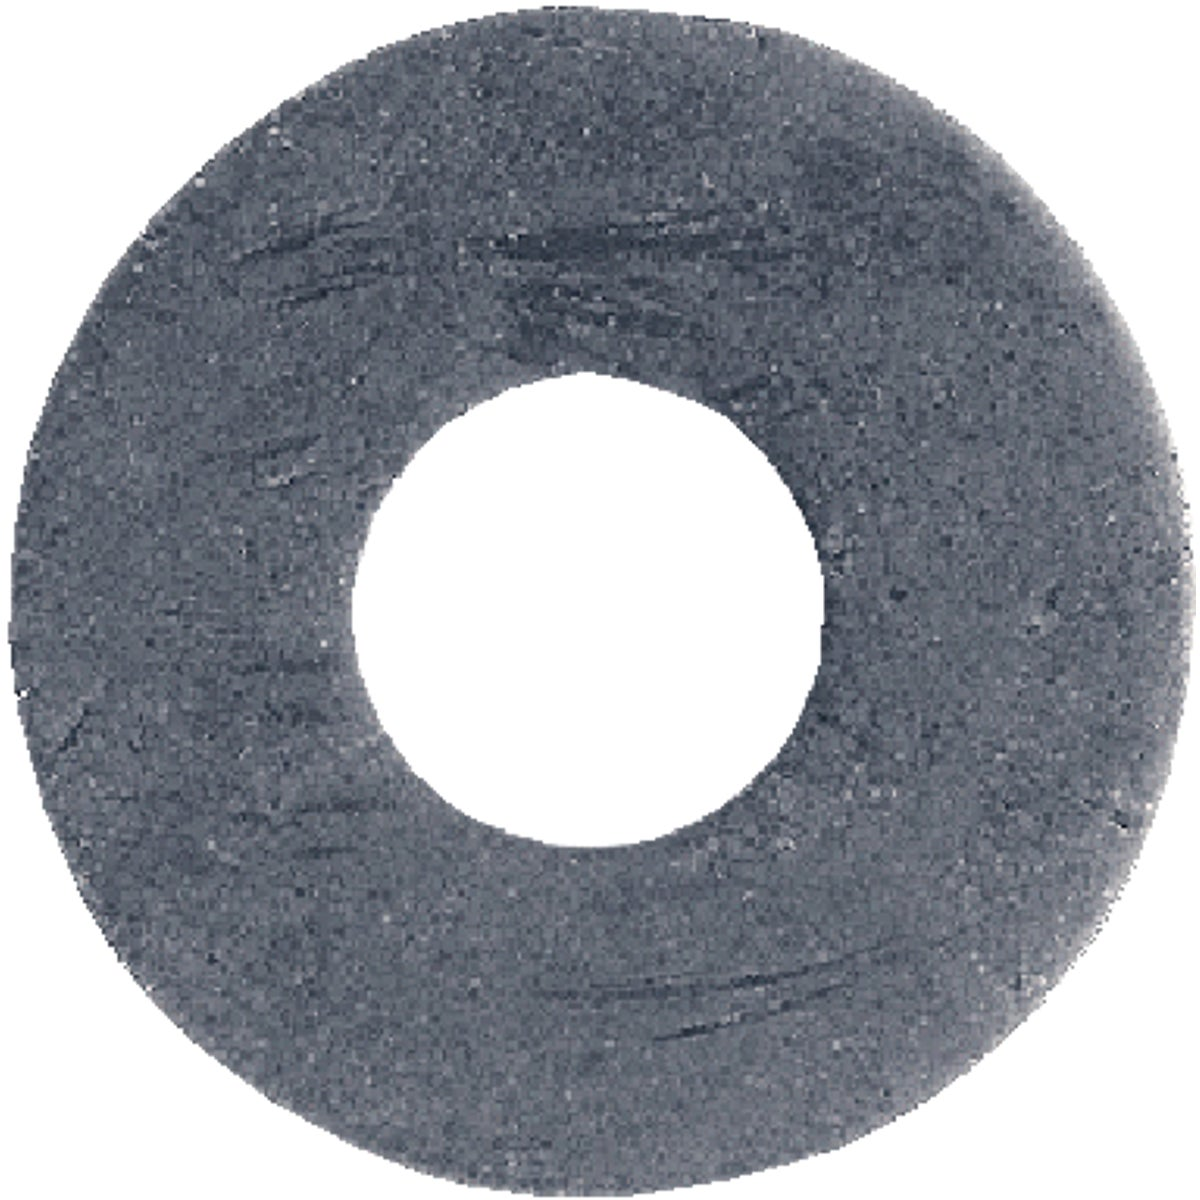 RUBBER BIBB GASKET - 35317B by Danco Perfect Match